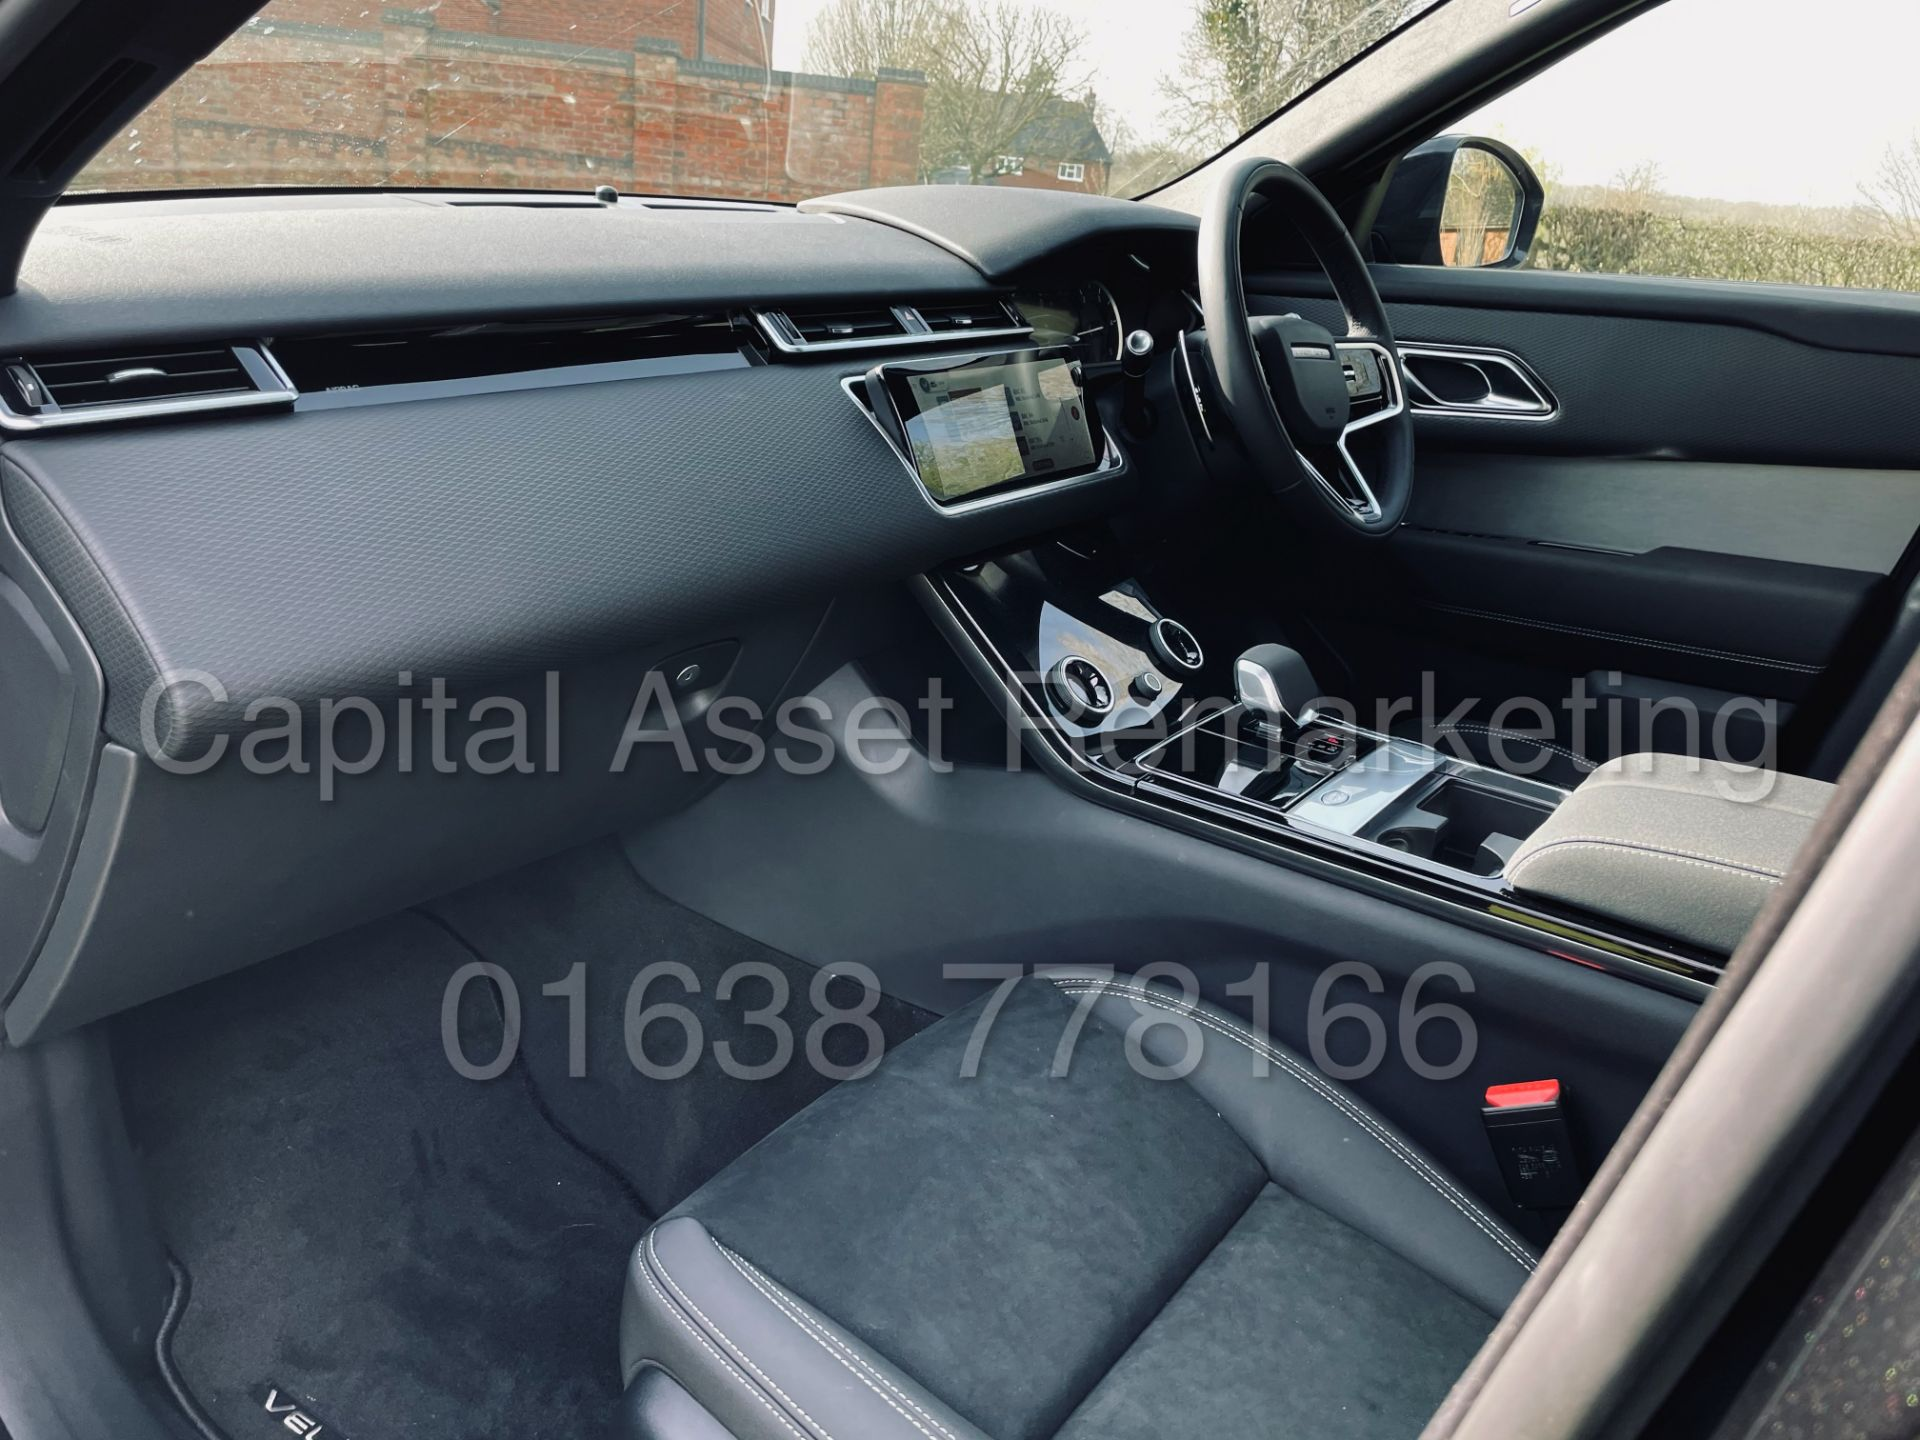 (On Sale) RANGE ROVER VELAR *R-DYNAMIC* SUV (2021) *8 SPEED AUTO - LEATHER* (DELIVERY MILES) - Image 22 of 50